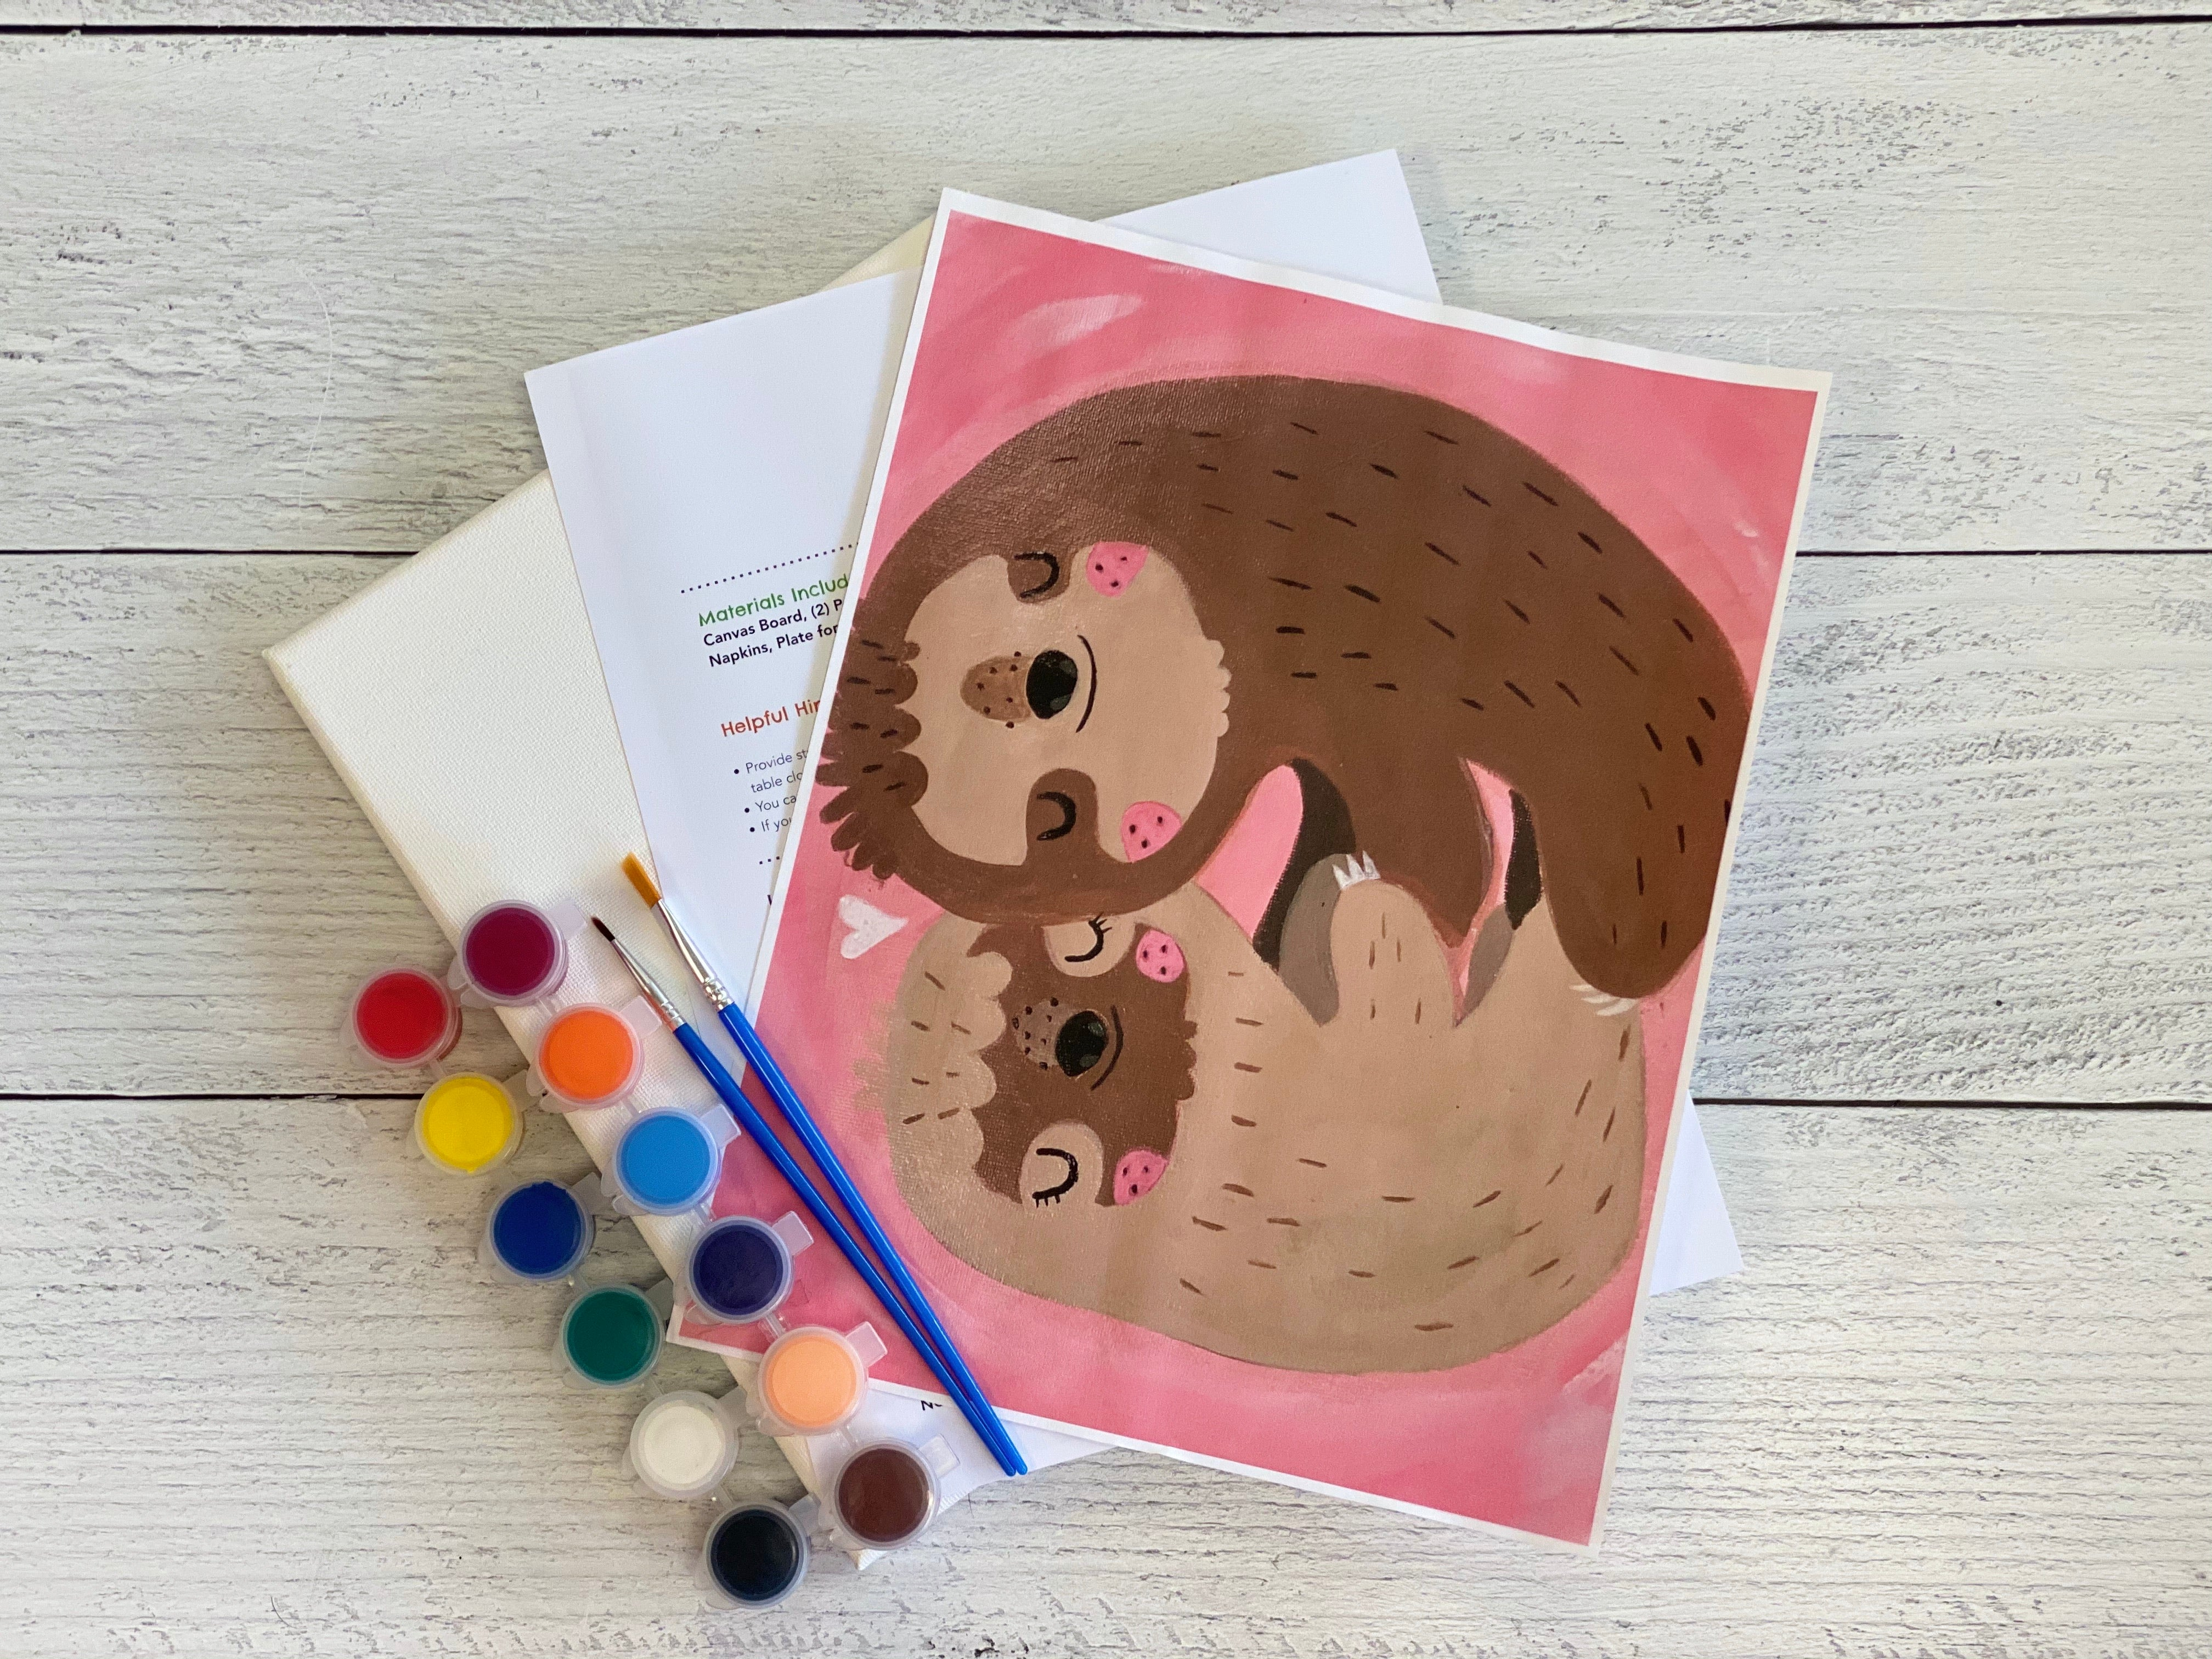 Hugging Sloths Acrylic Art Box